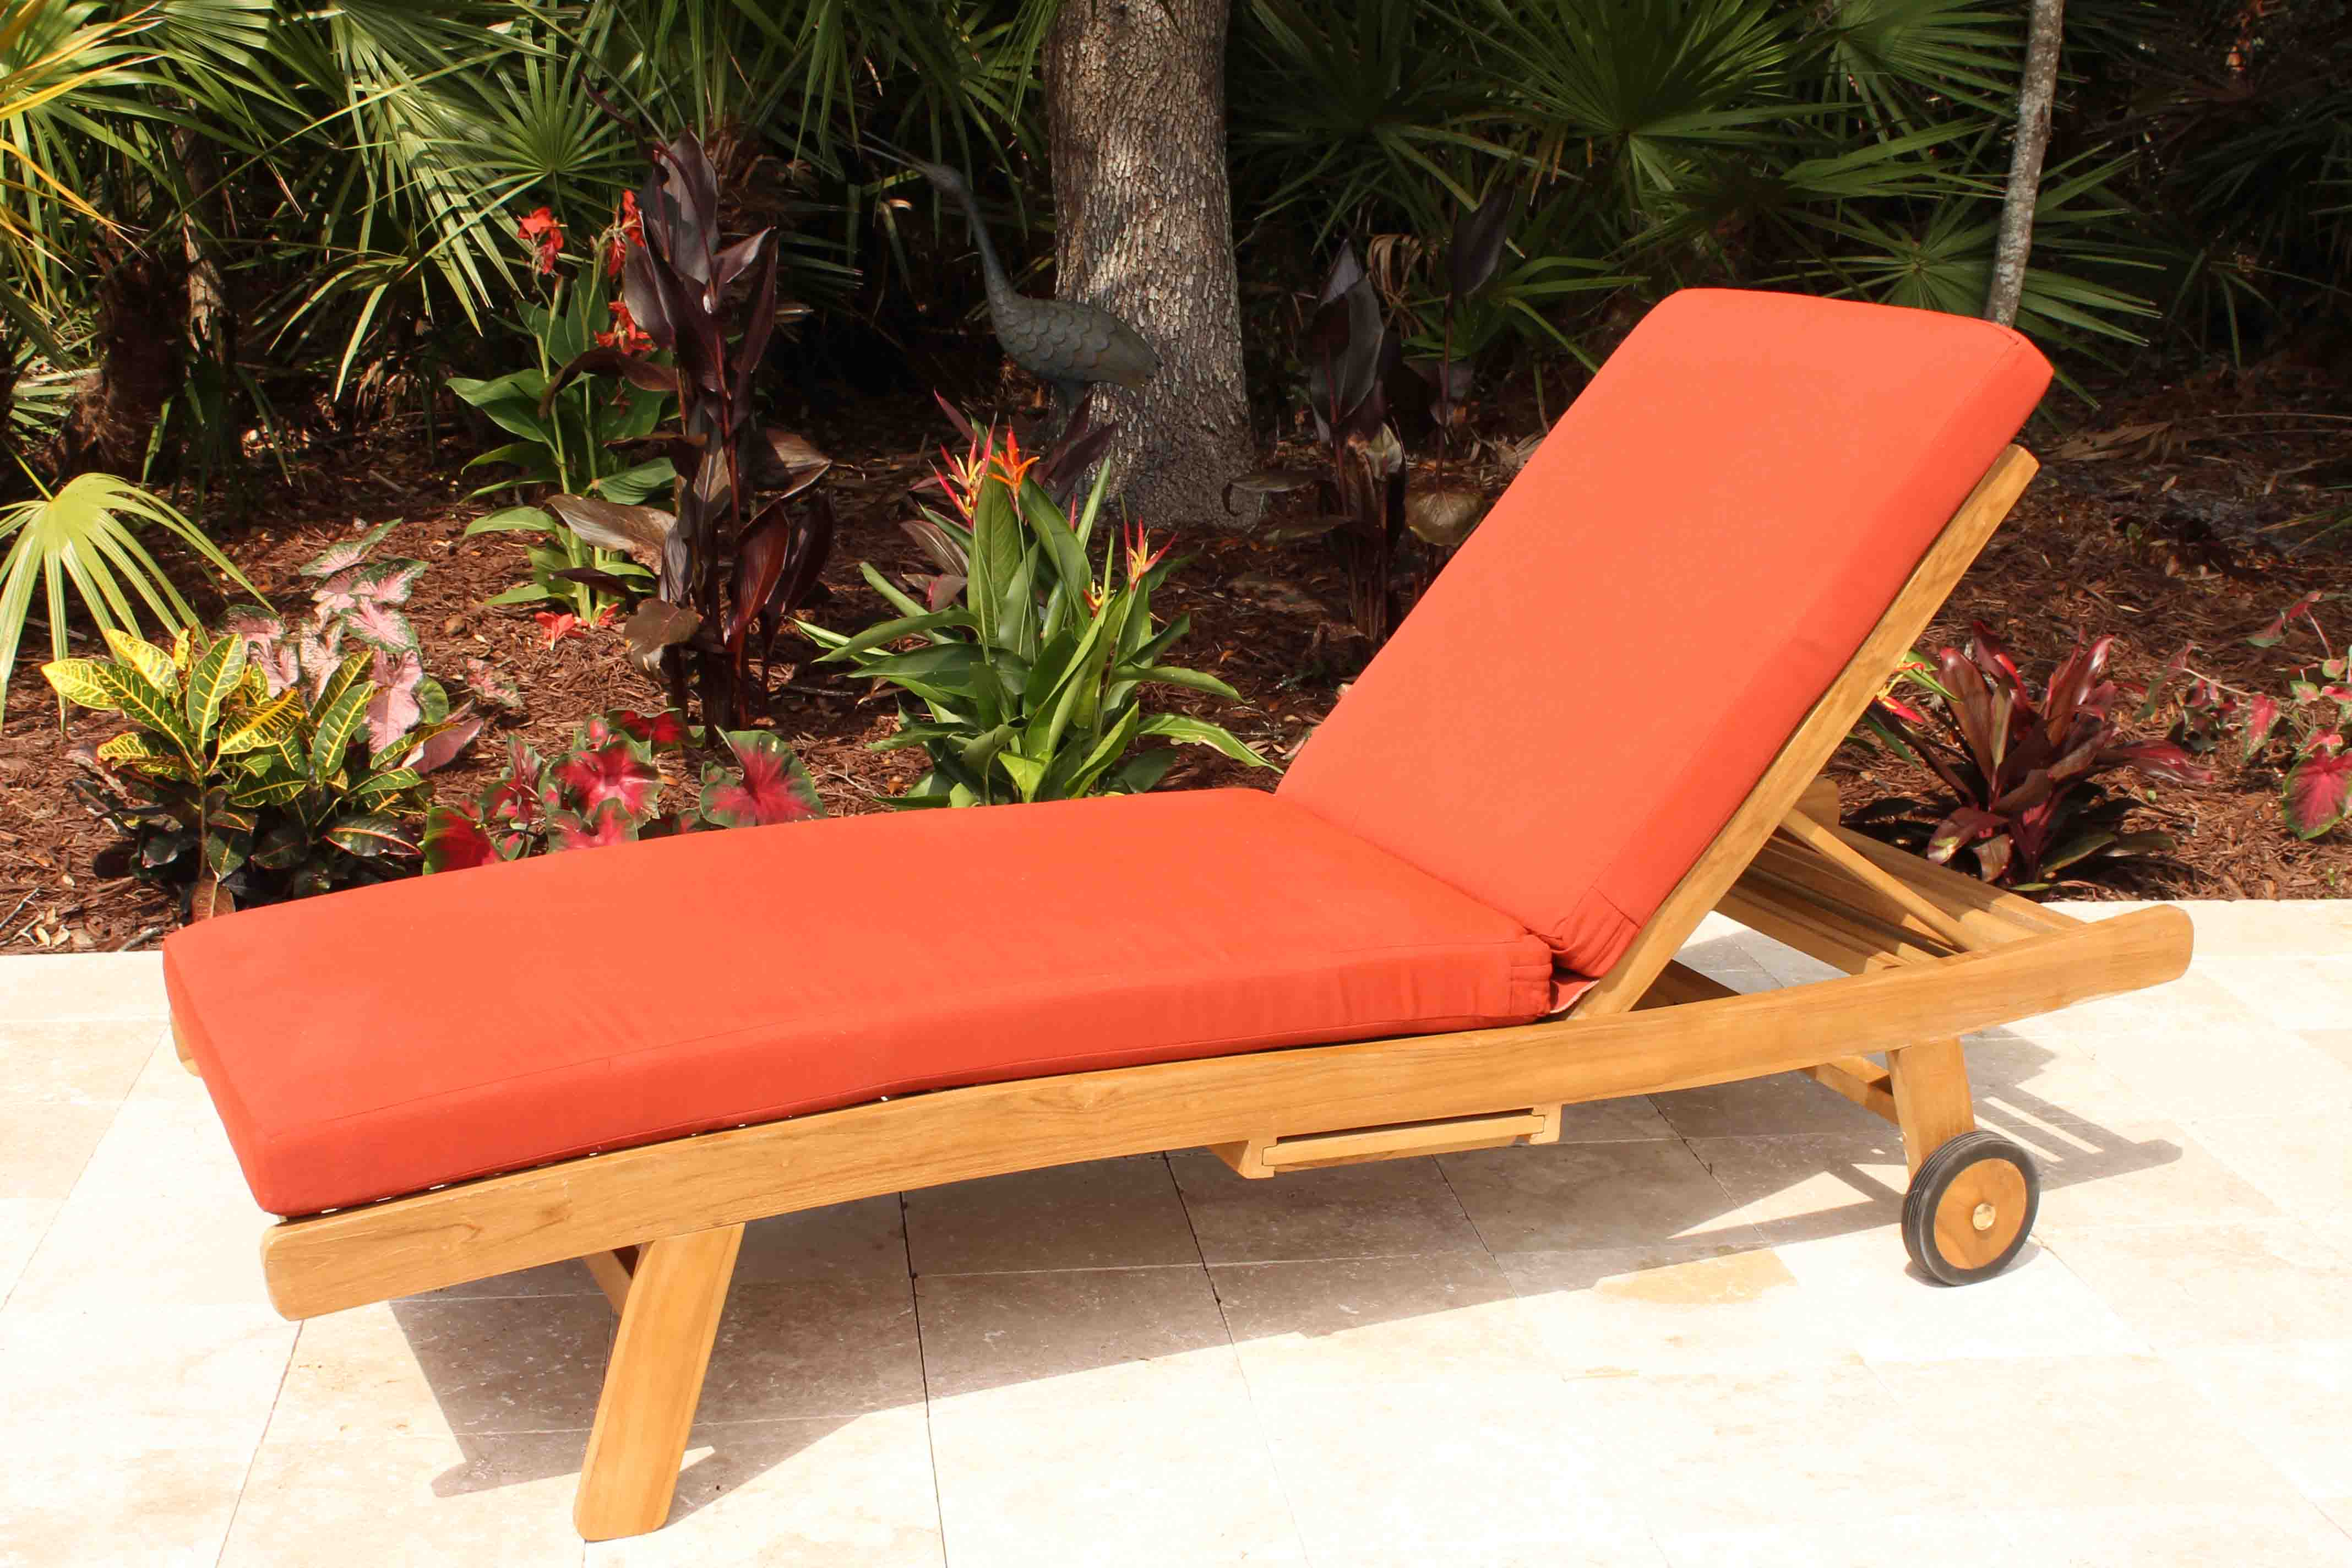 Teak Chaise Lounge Chairs Deep Seat Teak Lounge Set 4 Seat Including Full Sunbrella Cushions